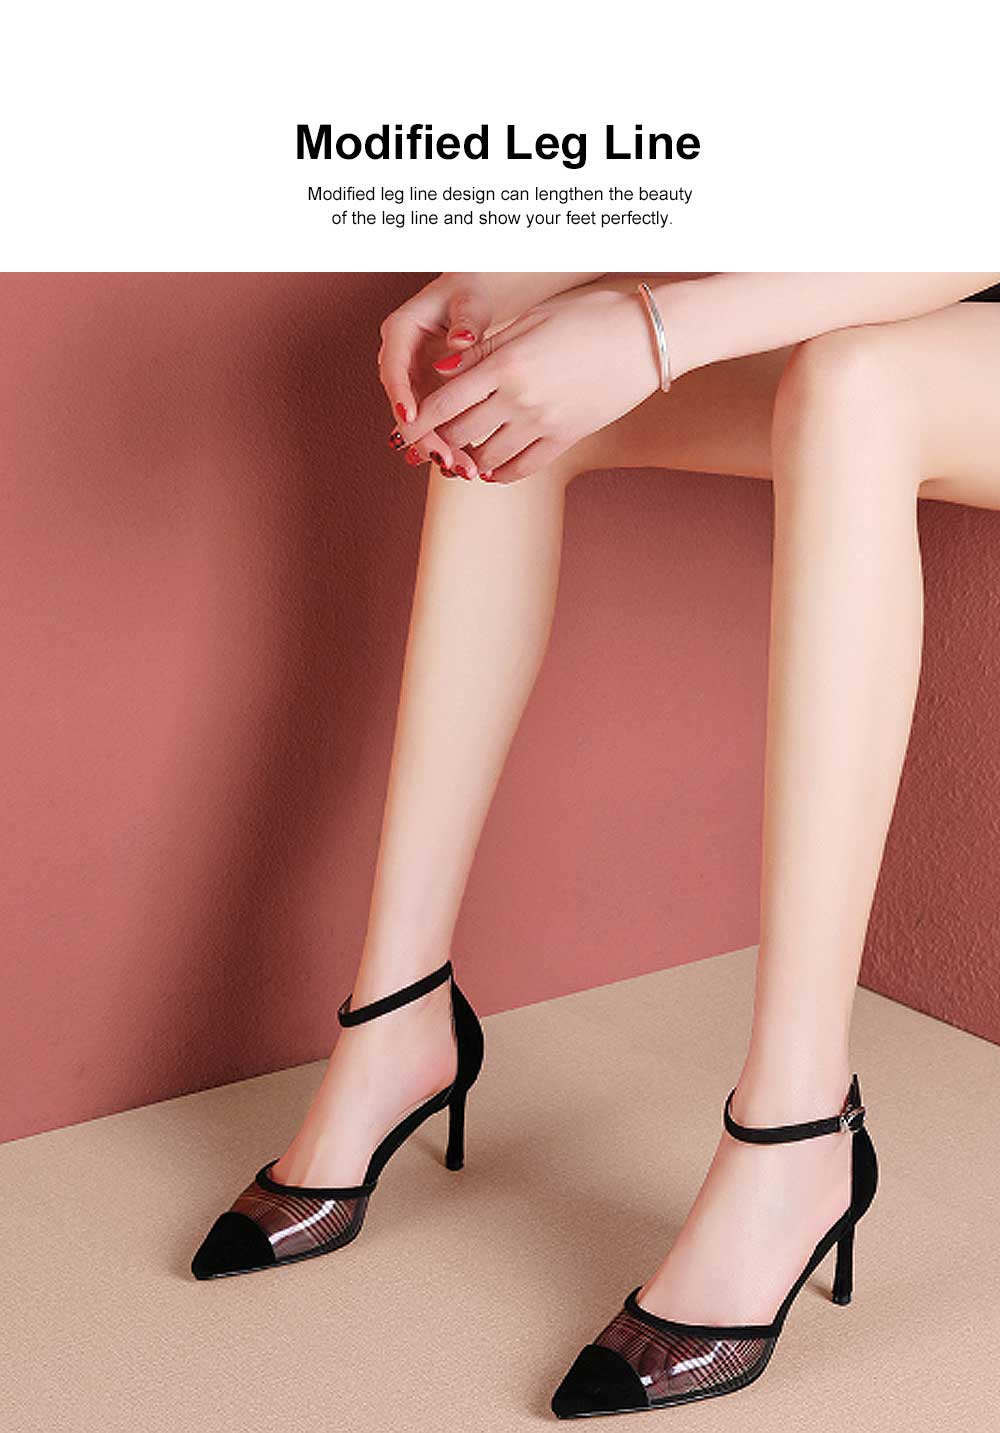 Plaid Sandals for Women, TPR Shoe Sole Sheepskin High Heels, Modified Leg Line Multi-sizes High-heeled Shoes Summer 2019 1